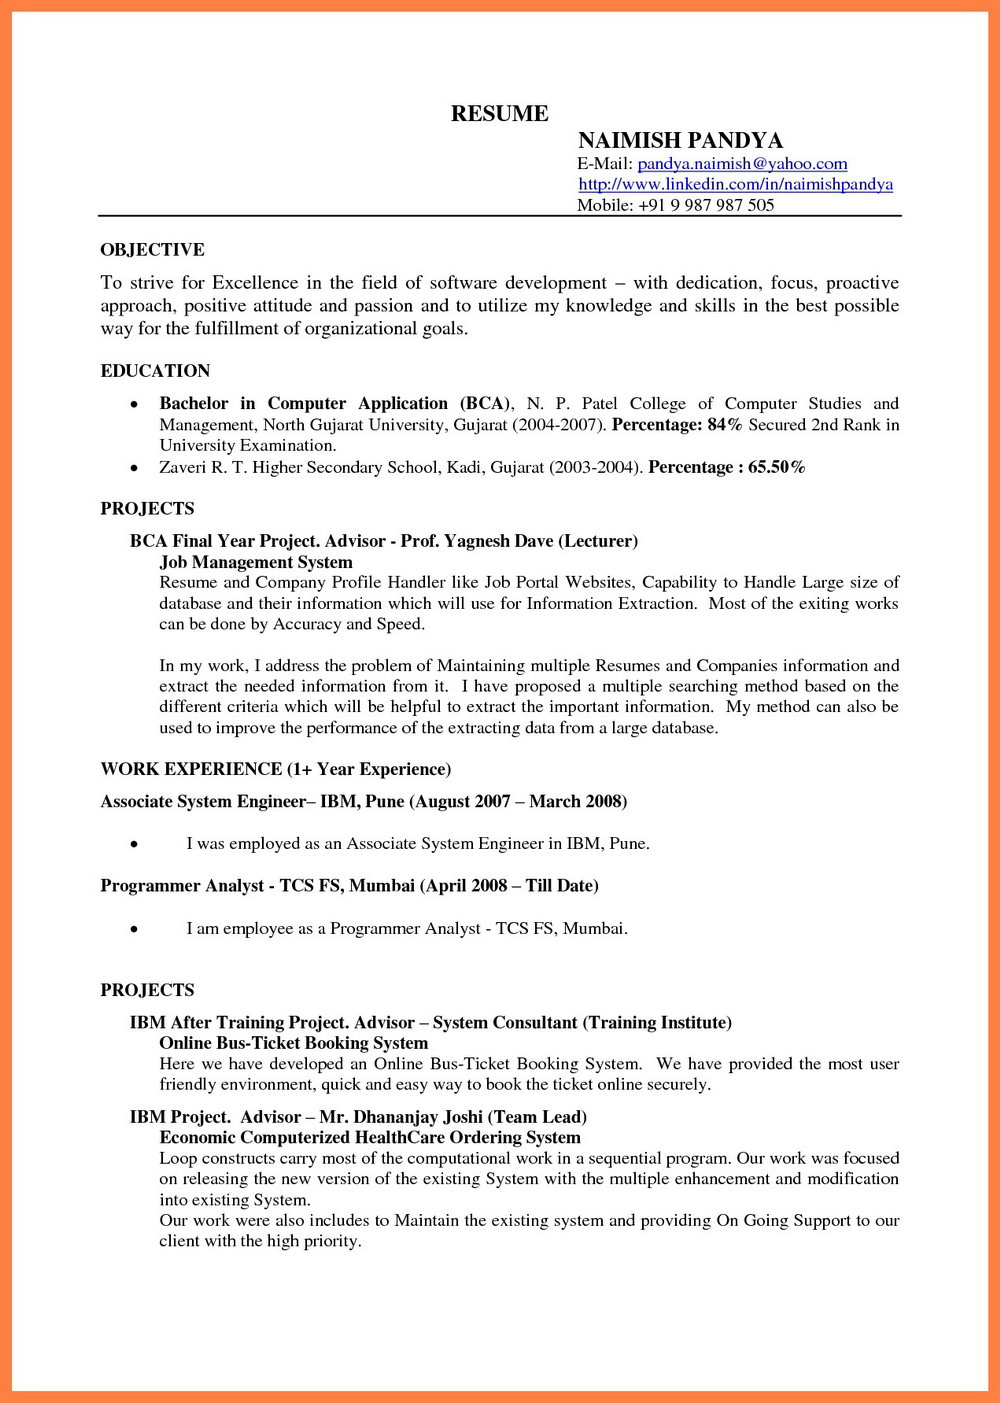 Free Google Drive Resume Templates